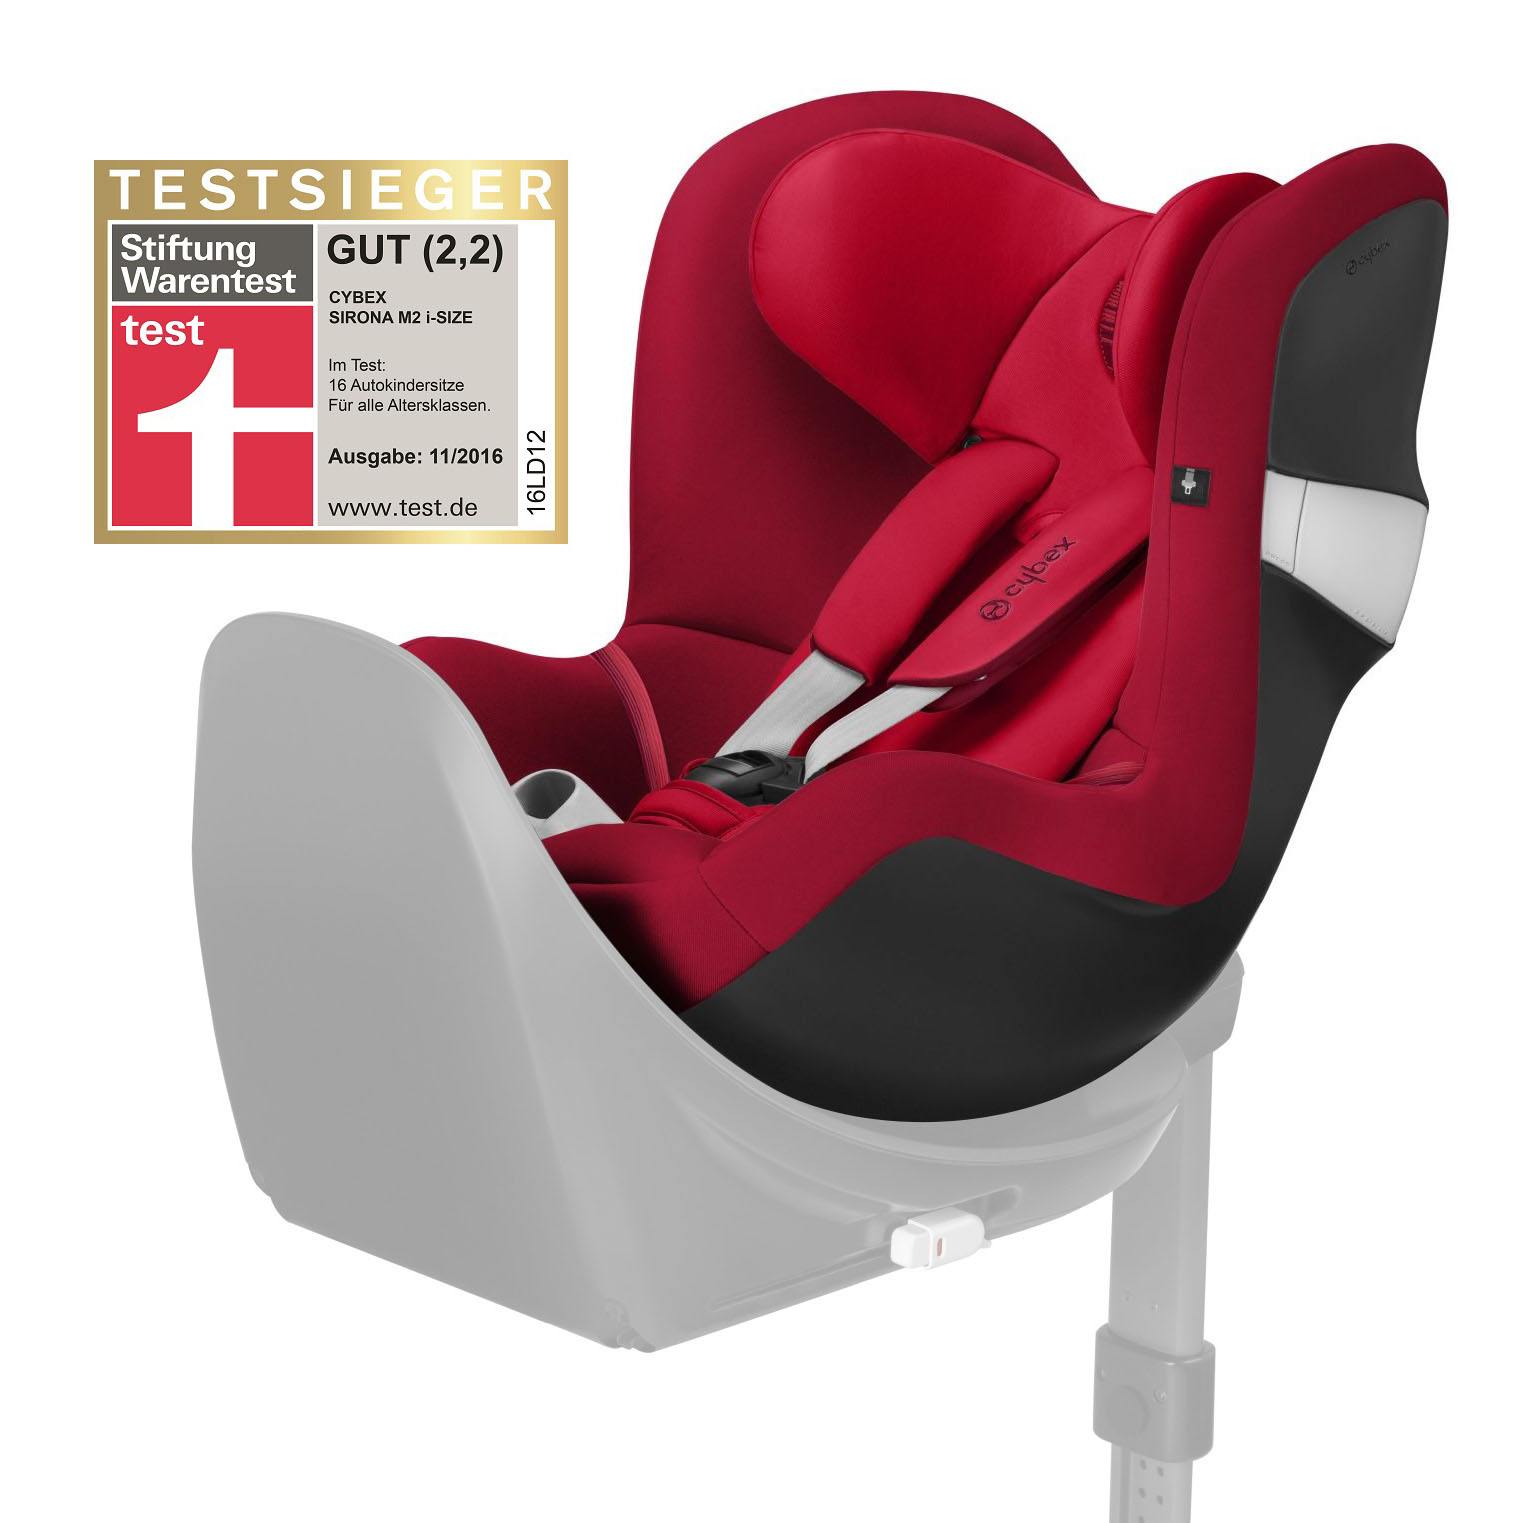 cybex child car seat sirona m2 i size 2018 rebel red red. Black Bedroom Furniture Sets. Home Design Ideas